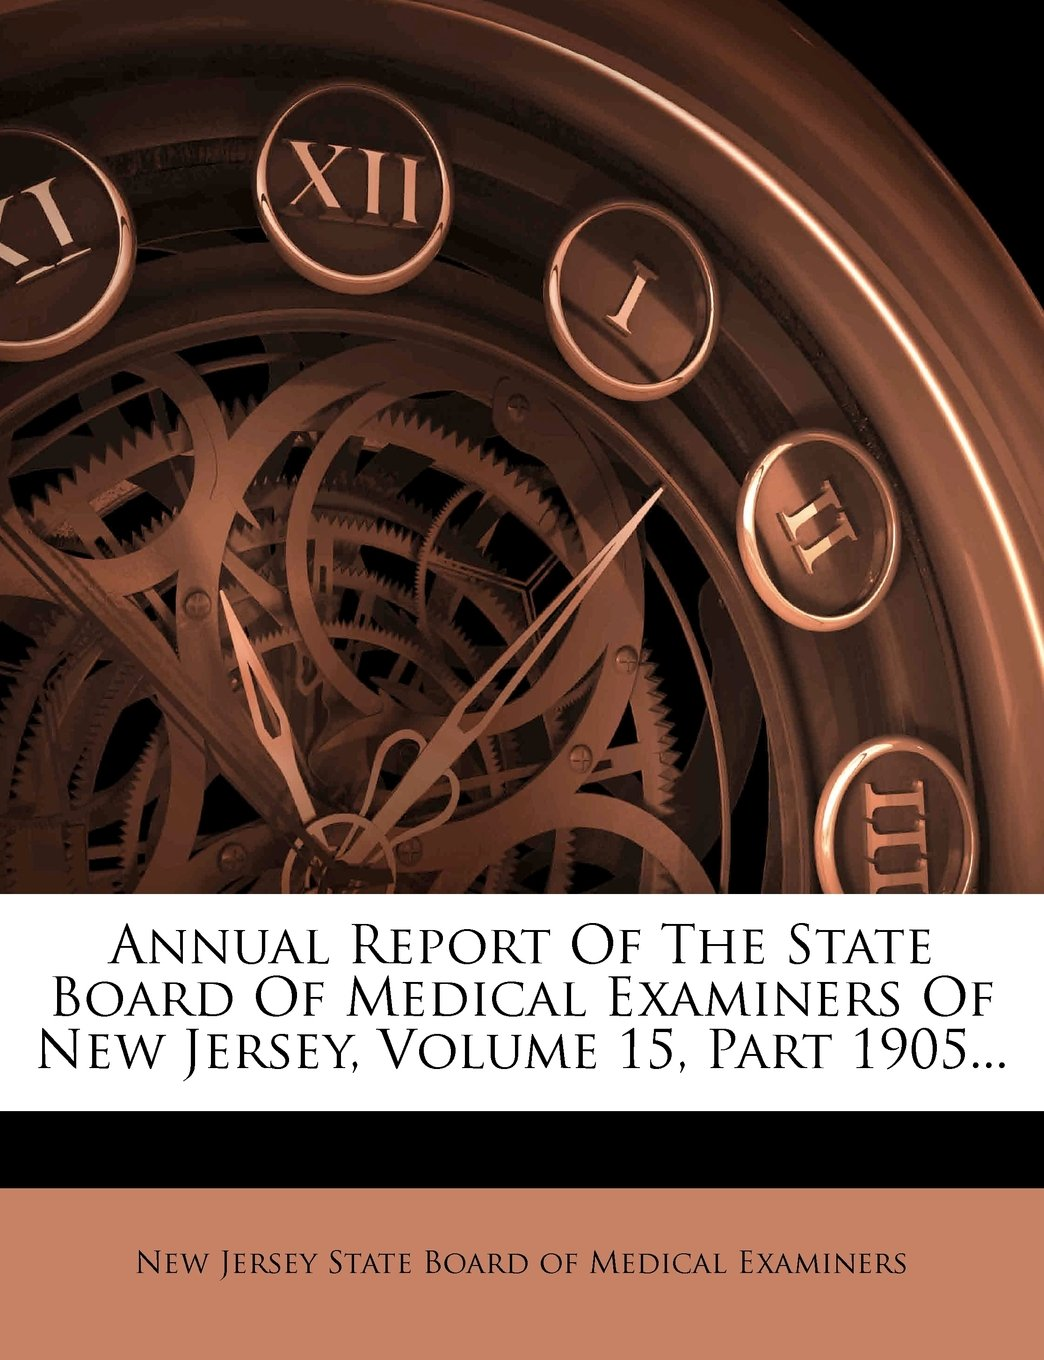 Annual Report Of The State Board Of Medical Examiners Of New Jersey, Volume 15, Part 1905... pdf